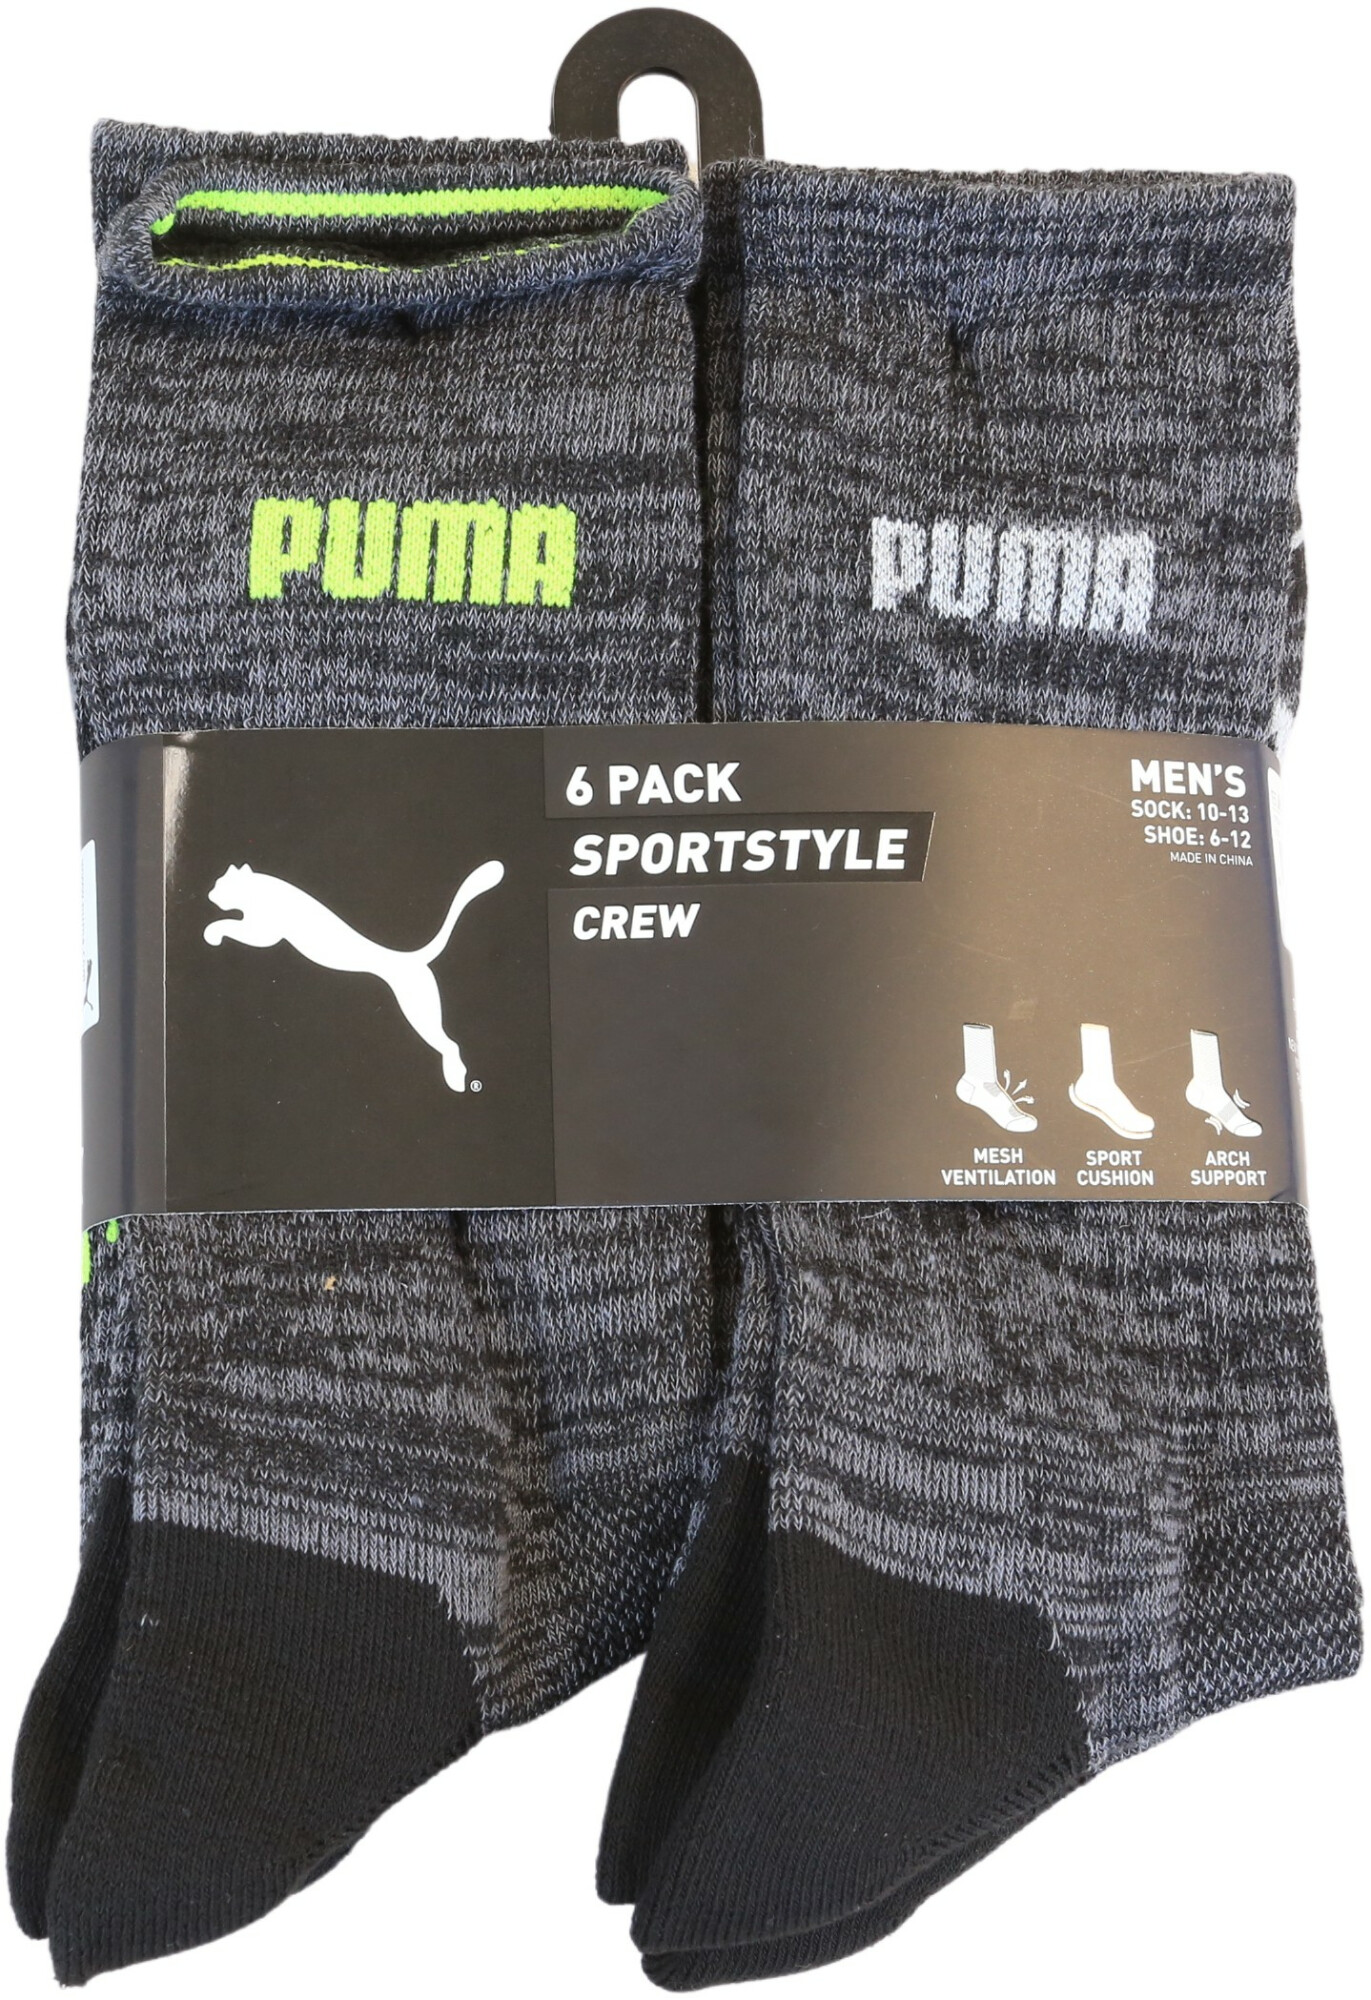 Puma Men's Black Sportstyle Crew 6 Pack Fishing Sock - 10-13